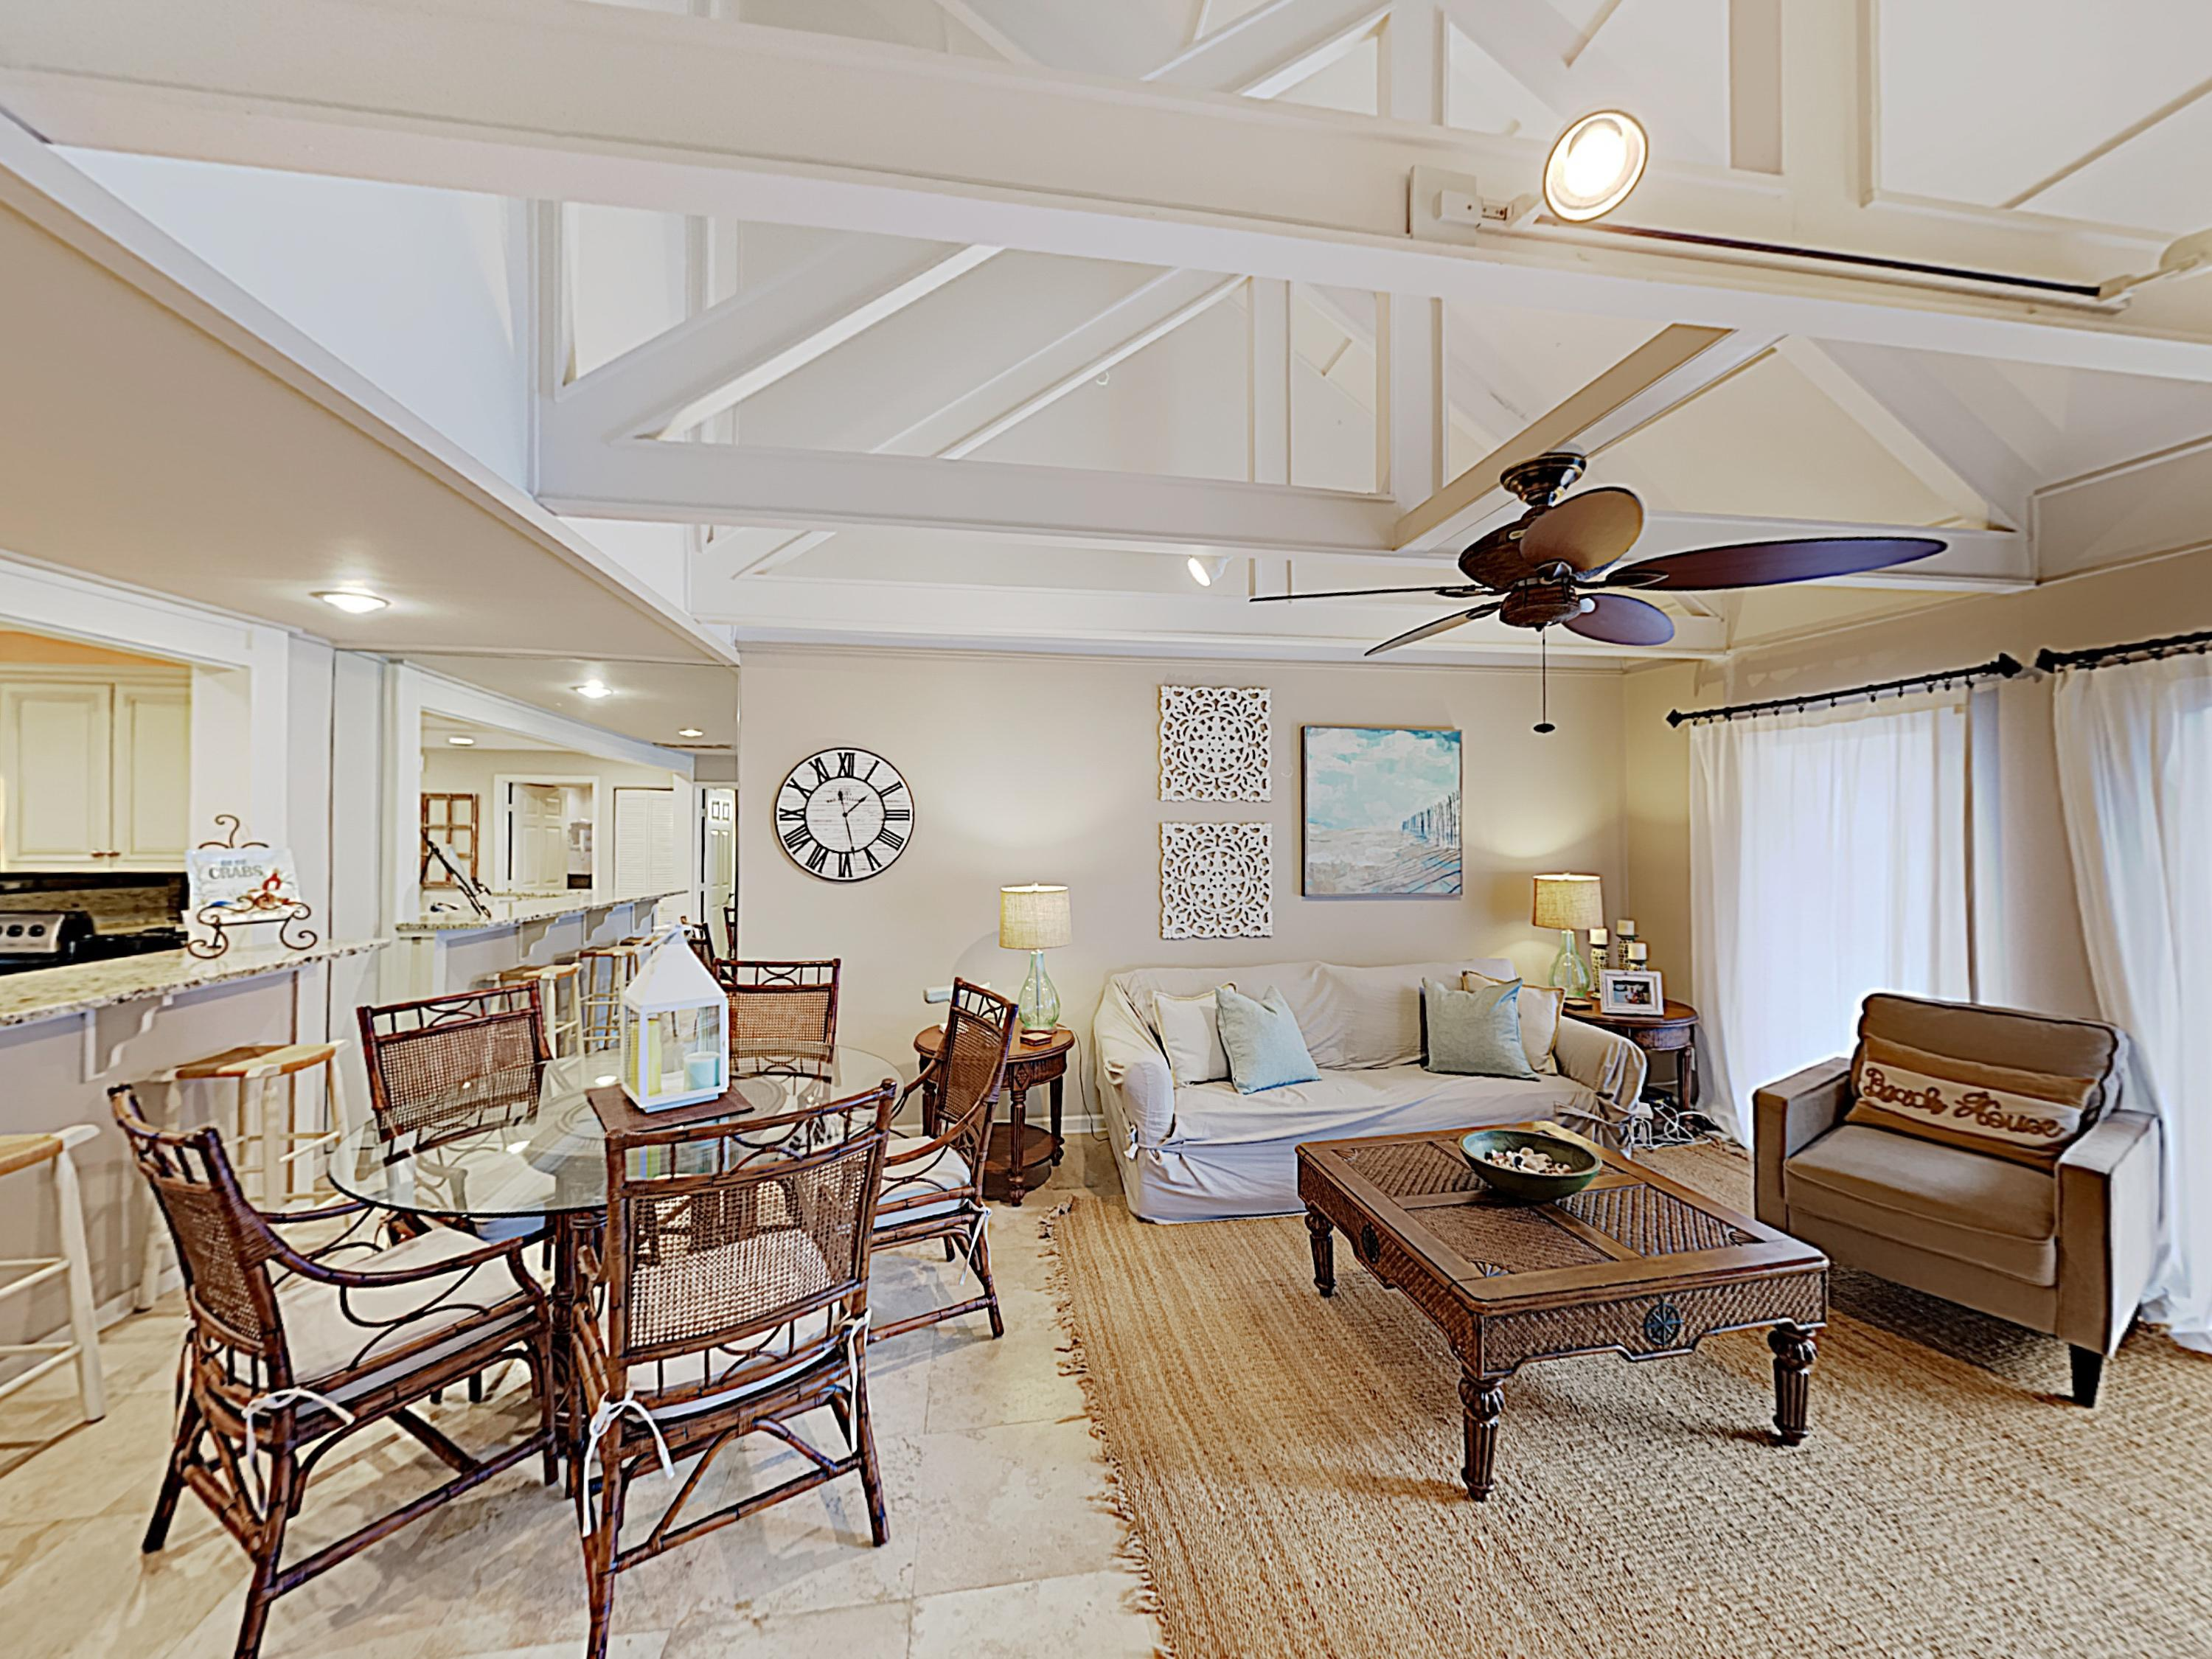 Welcome to Hilton Head! This townhome is professionally managed by TurnKey Vacation Rentals.